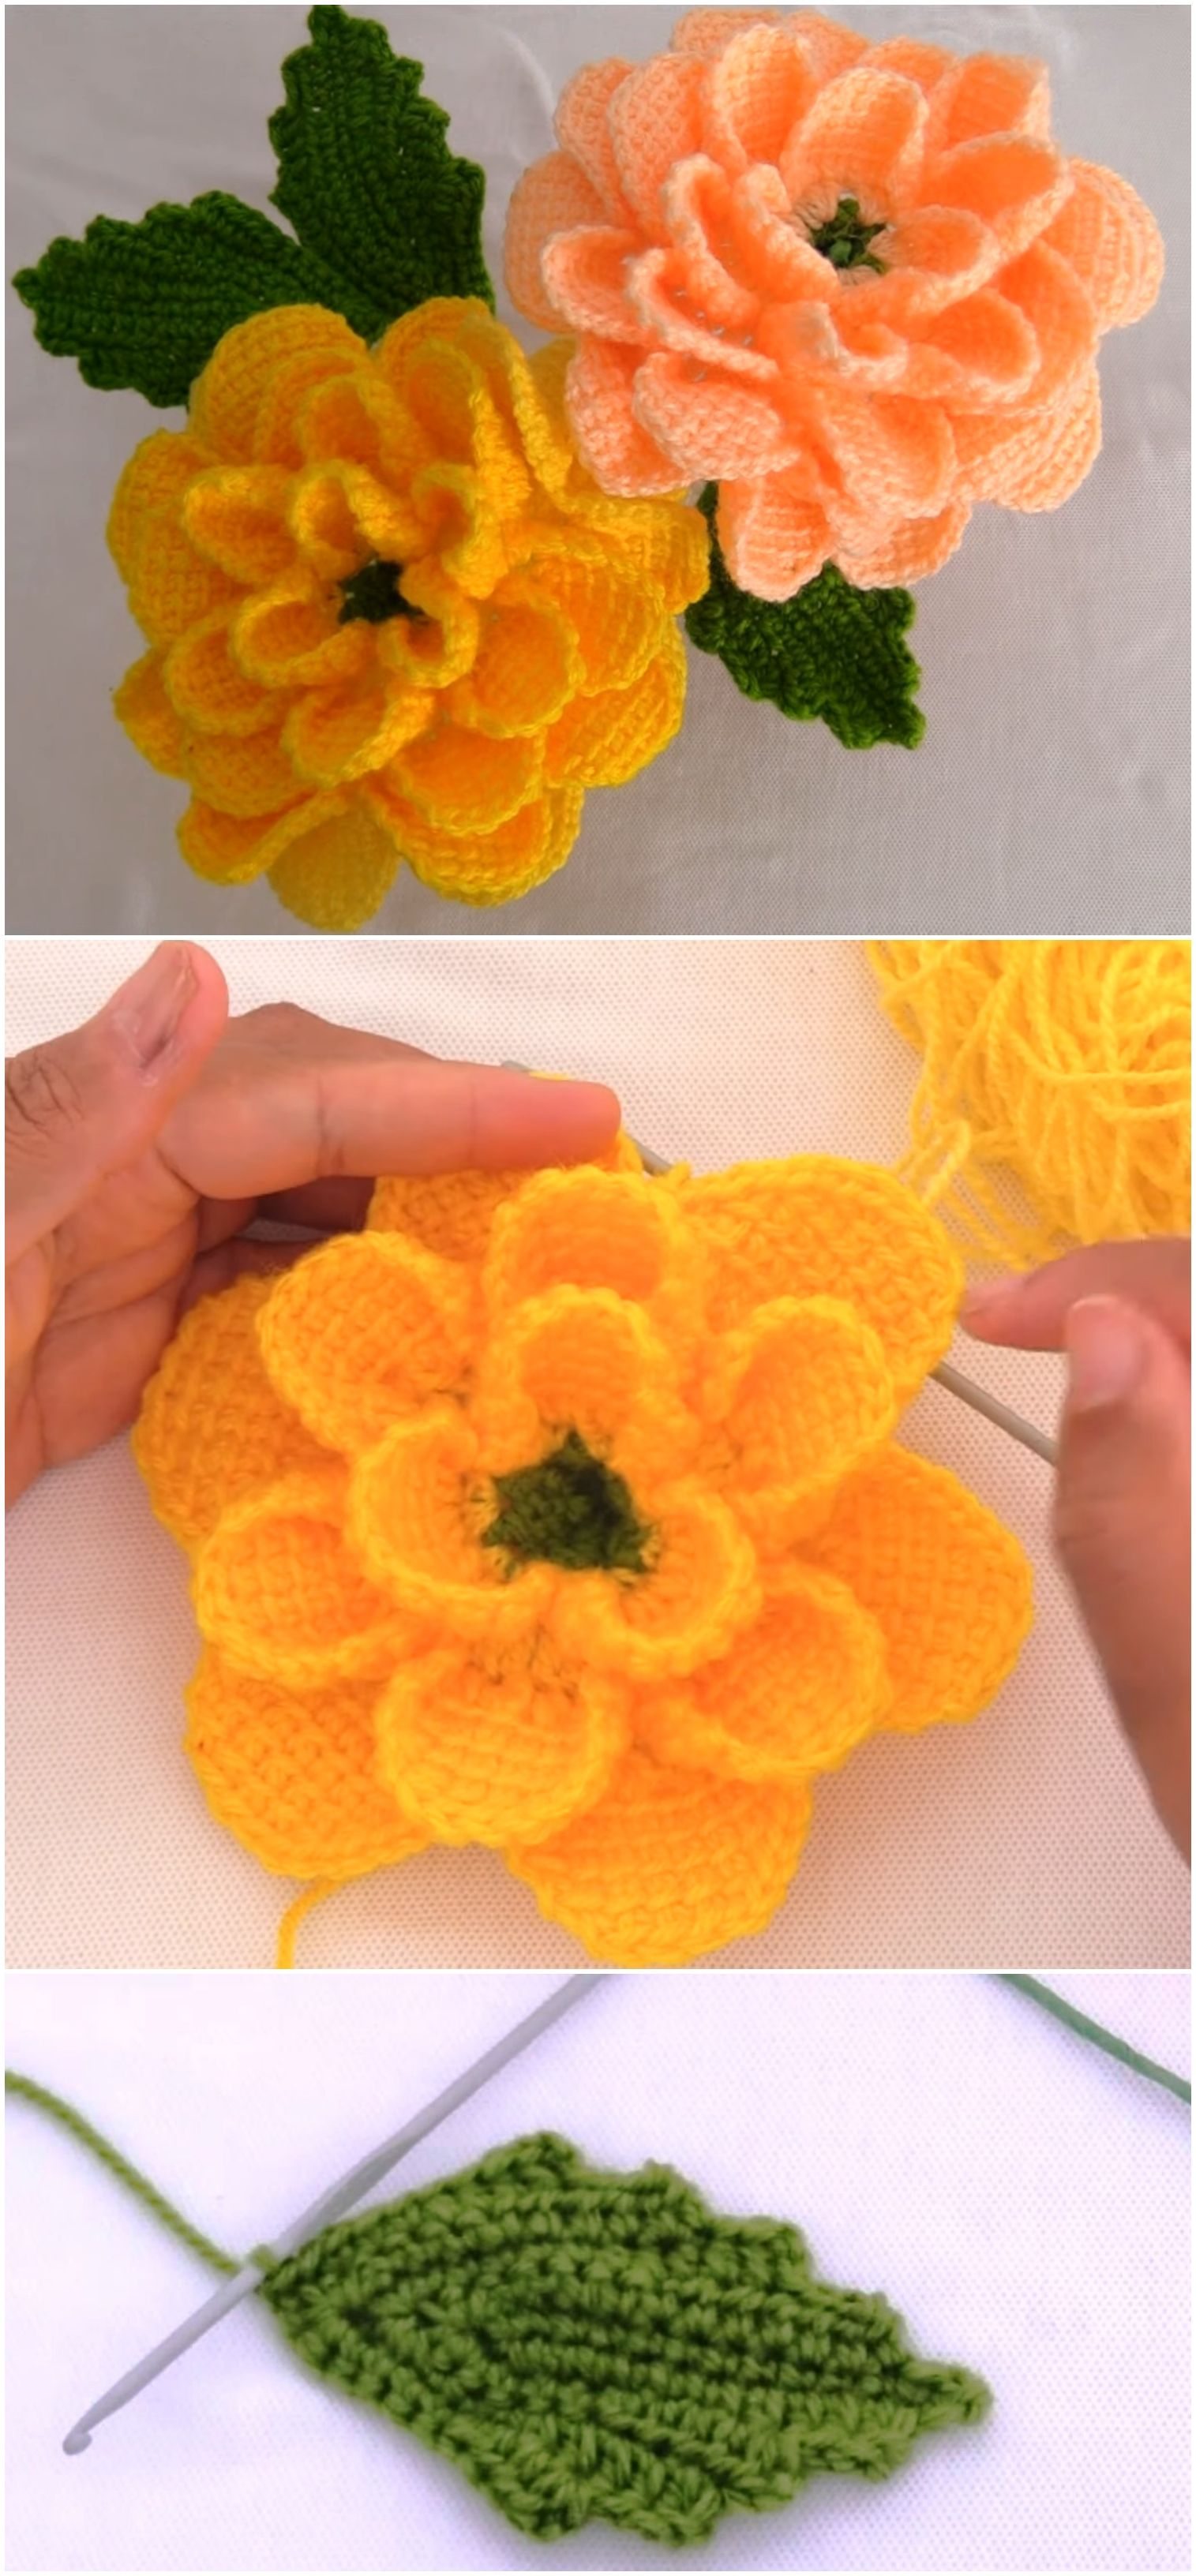 Crochet 3 D Rose Flower With Leaves - Crochet Ideas #crochetflowers